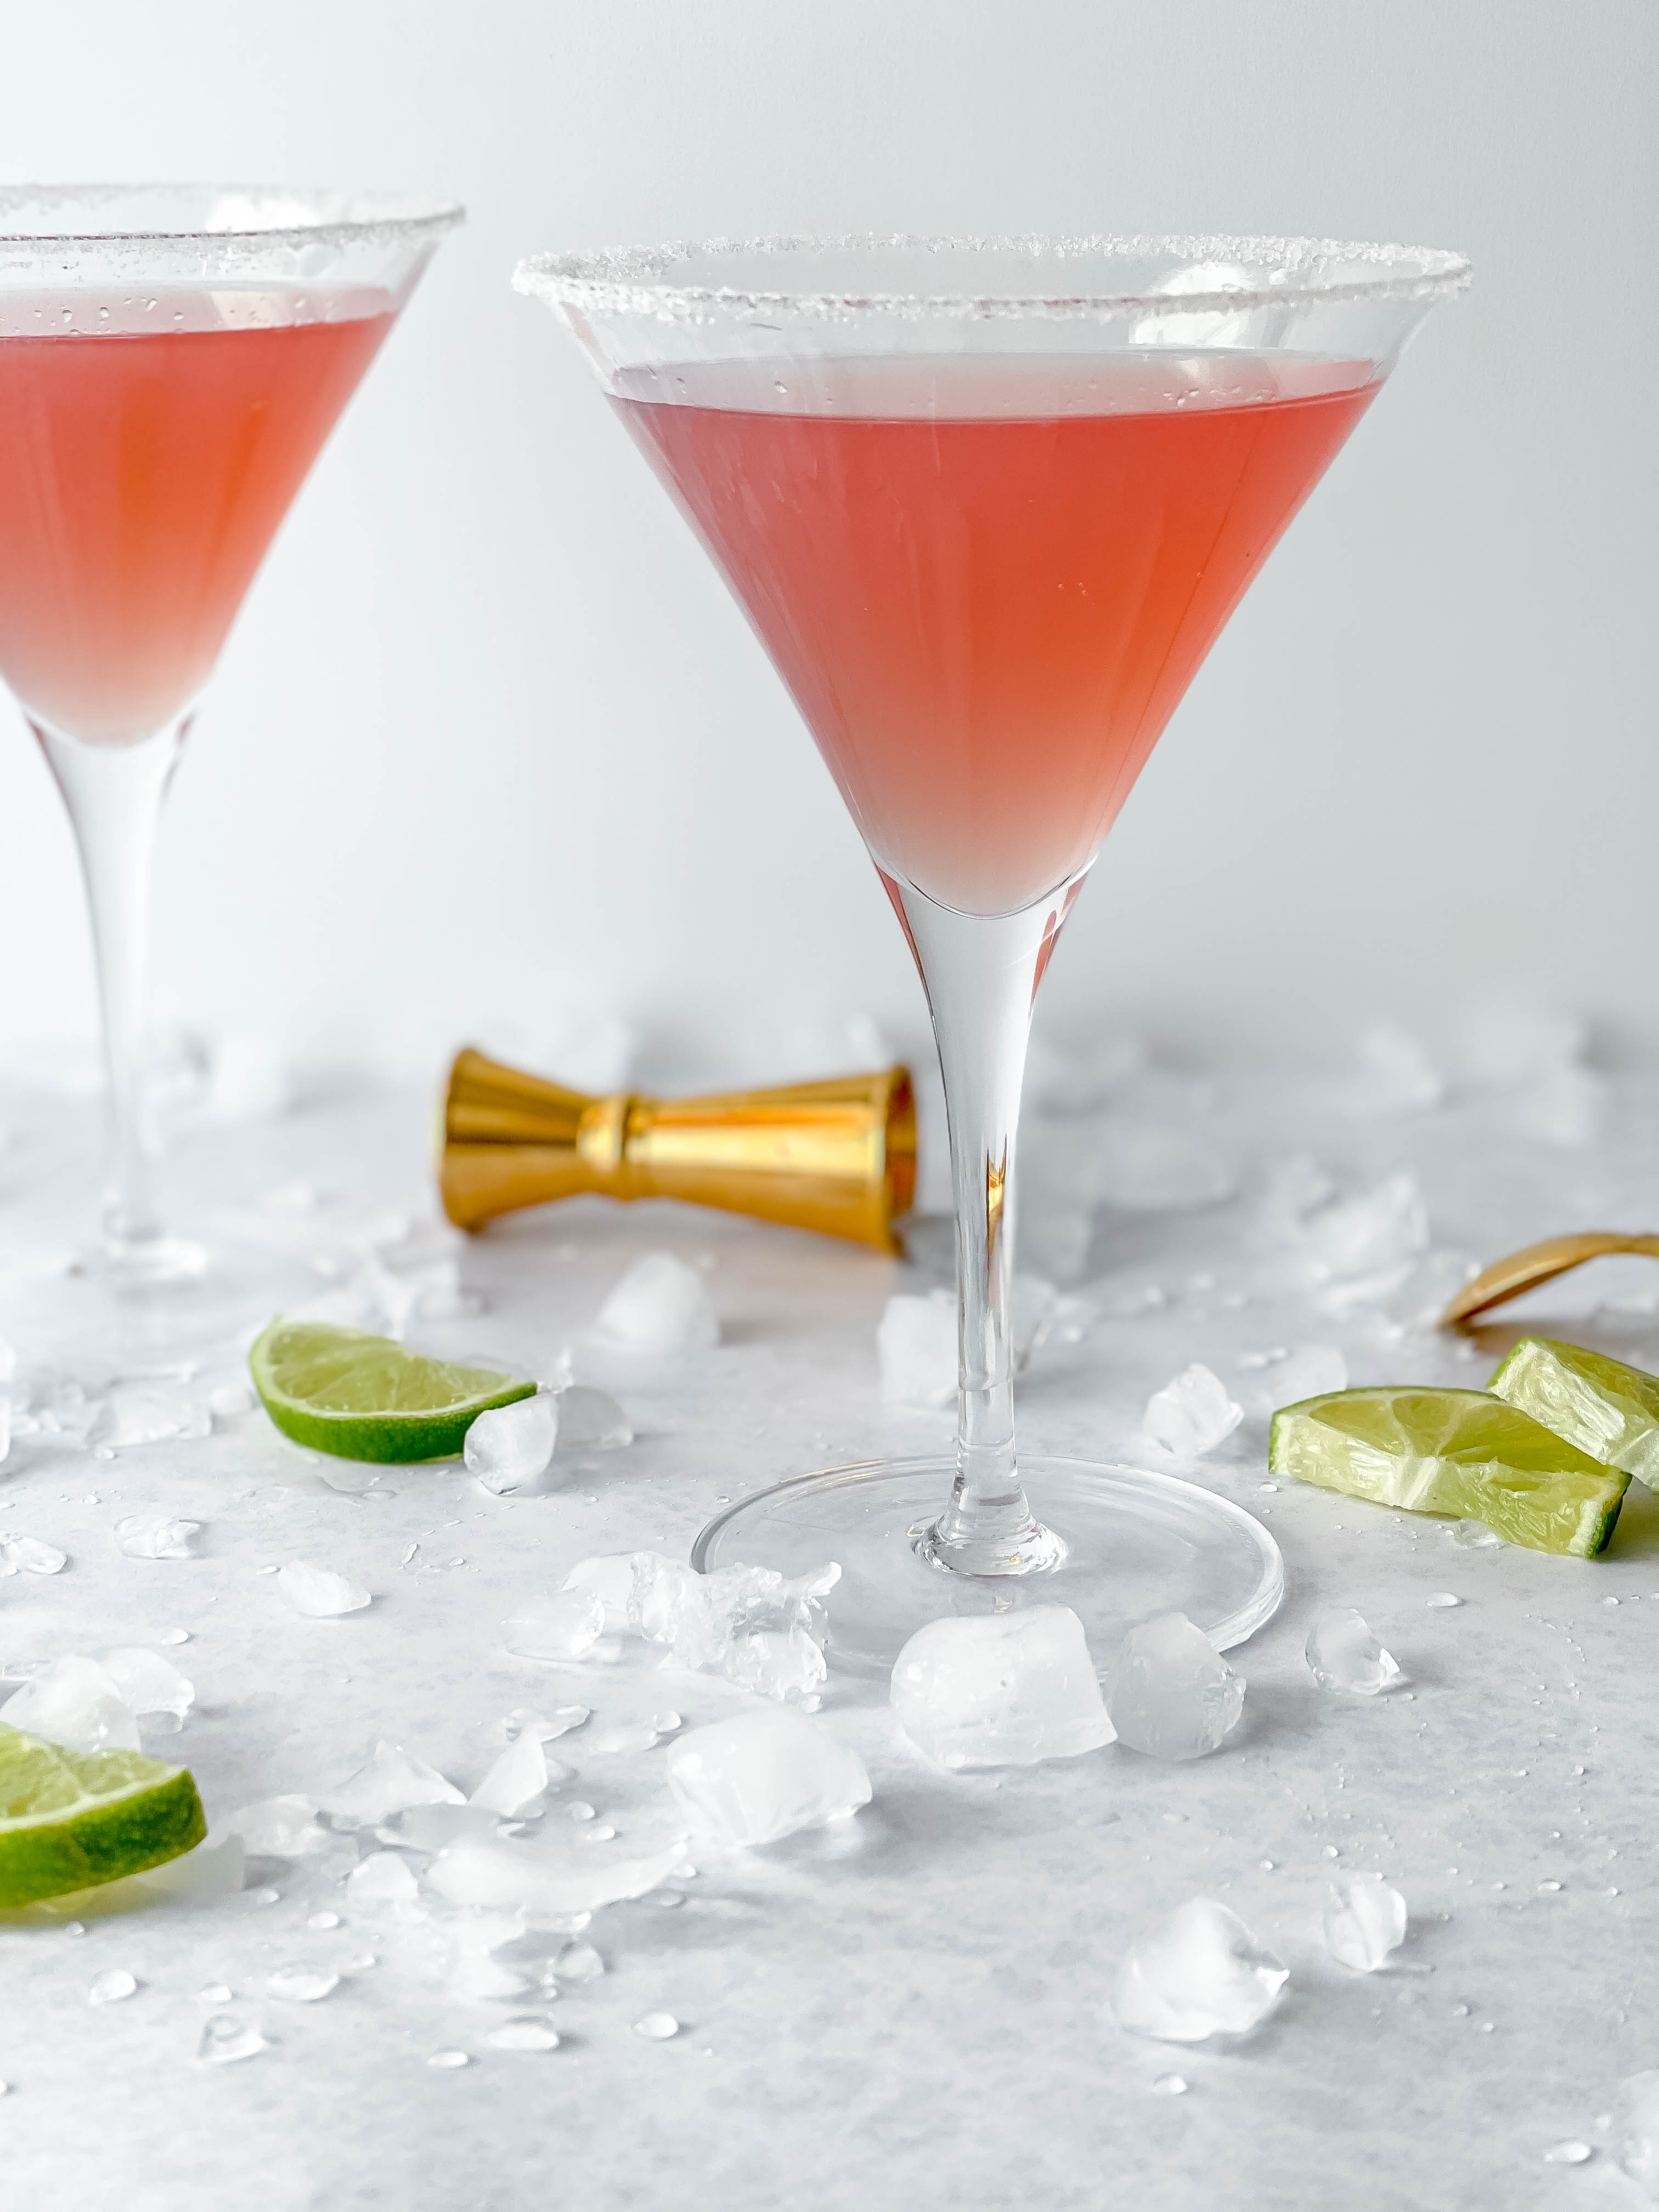 '90s Classic (and My Mother-in-Law's Favorite) Cosmopolitan Cocktail